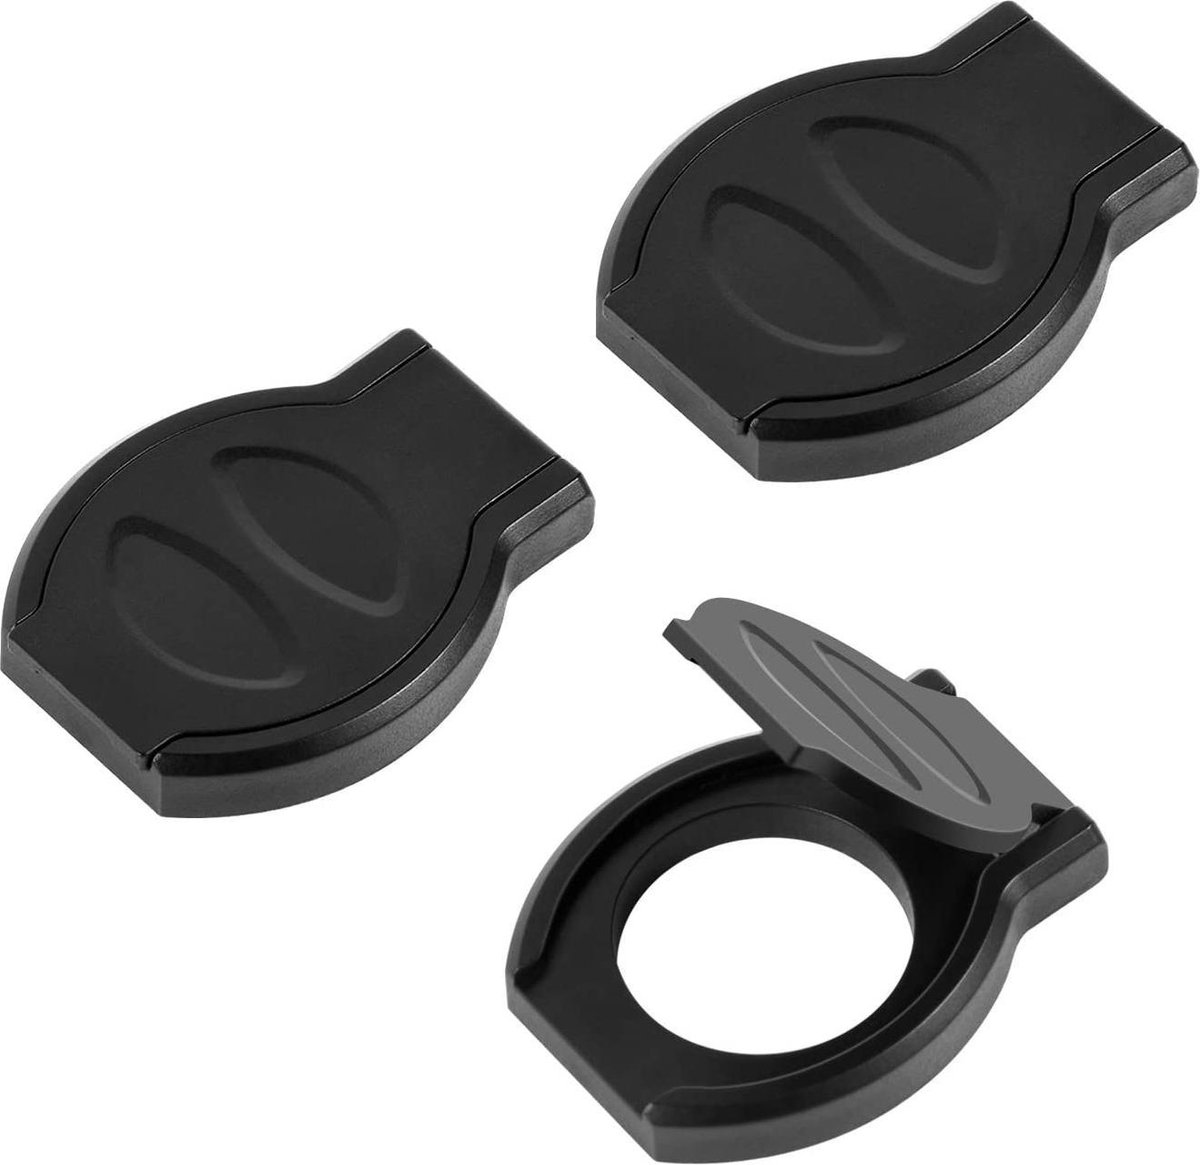 webcam cover - Dericam Webcam cover, three-piece webcam data protection lock with strong adhesive to protect the lens cover and protect the privacy and security of the HD camera.